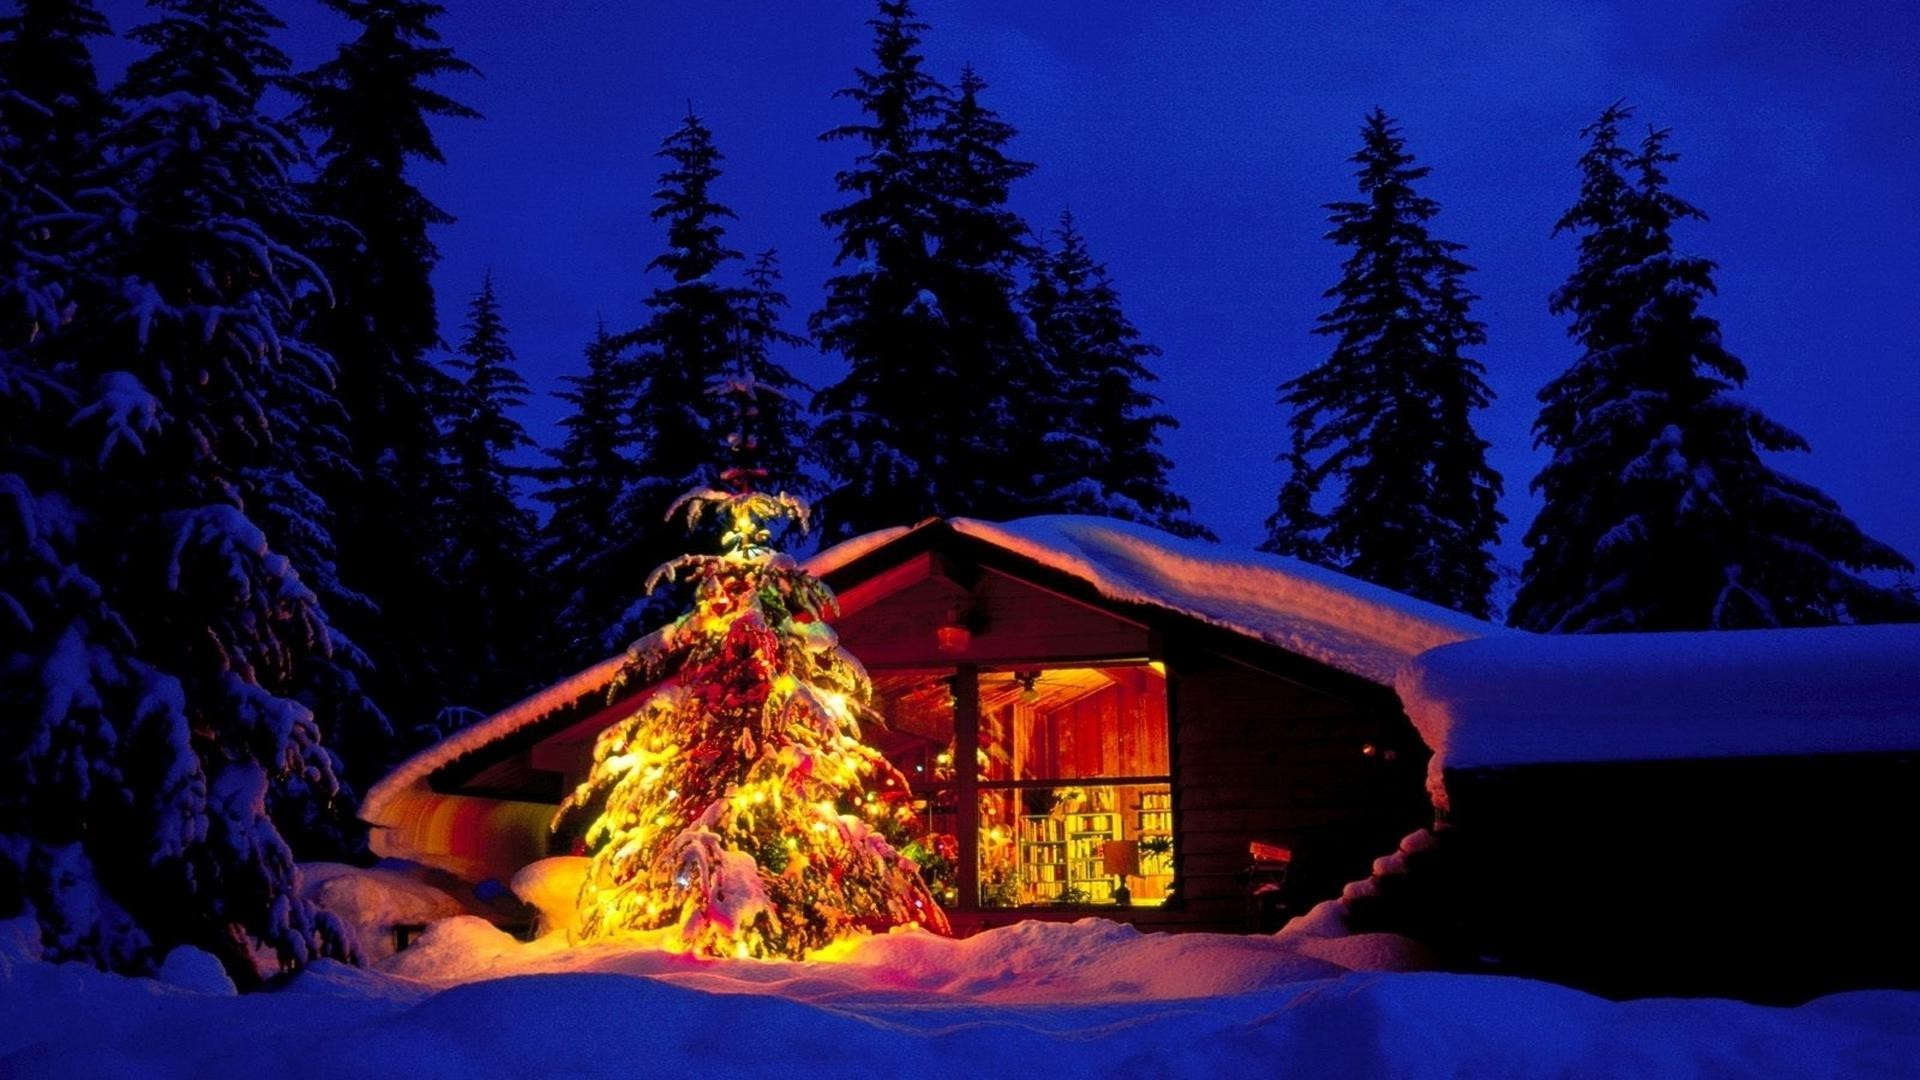 1920x1080 Christmas Tree, Lighting, Night, Snow, Christmas Decoration Wallpaper in   Resolution